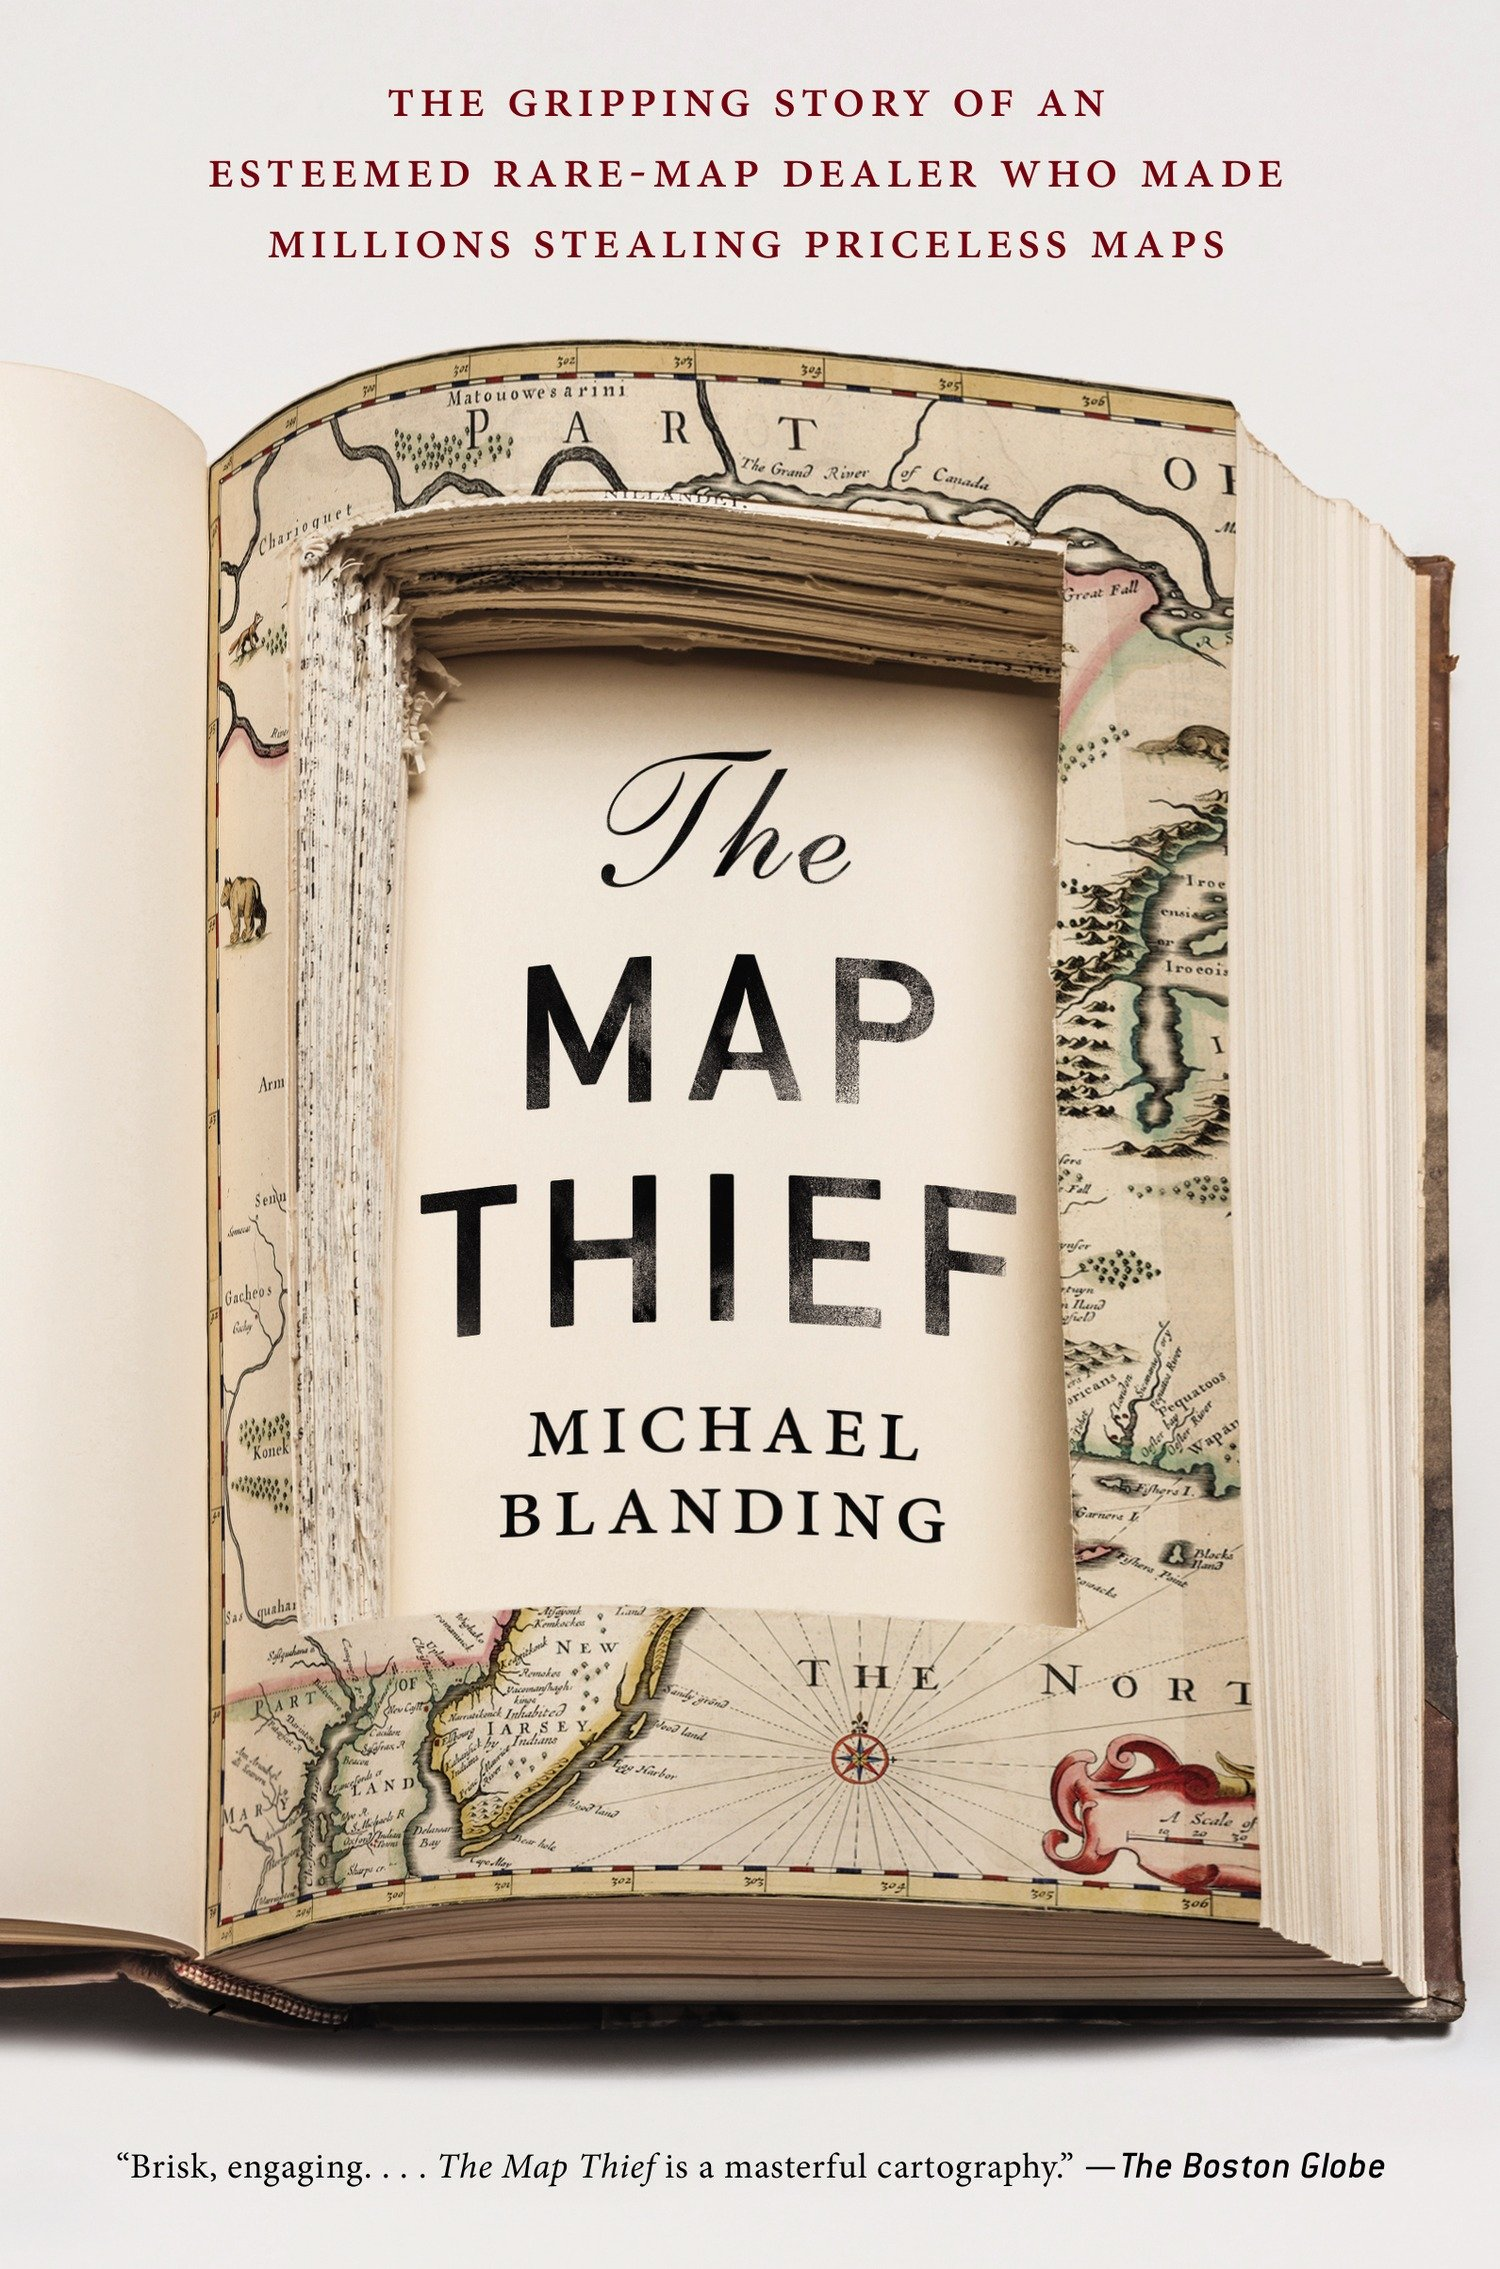 The Map Thief The Gripping Story of an Esteemed Rare-Map Dealer Who Made Millions Stealing Priceless Maps